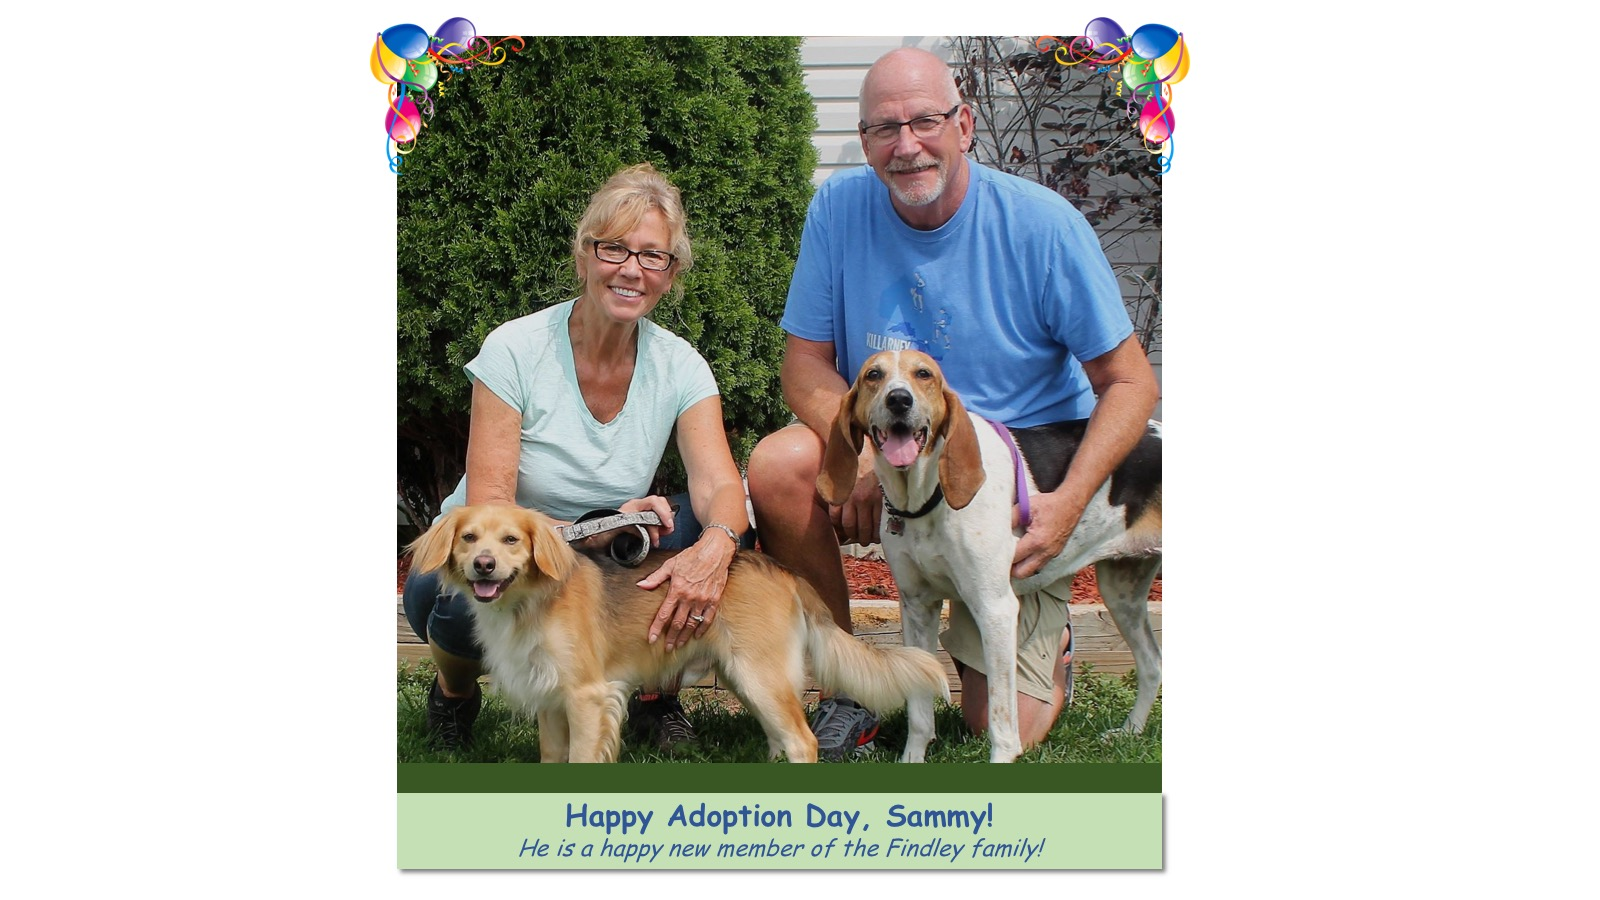 Sammy_Adoption_Photo_2018.jpg